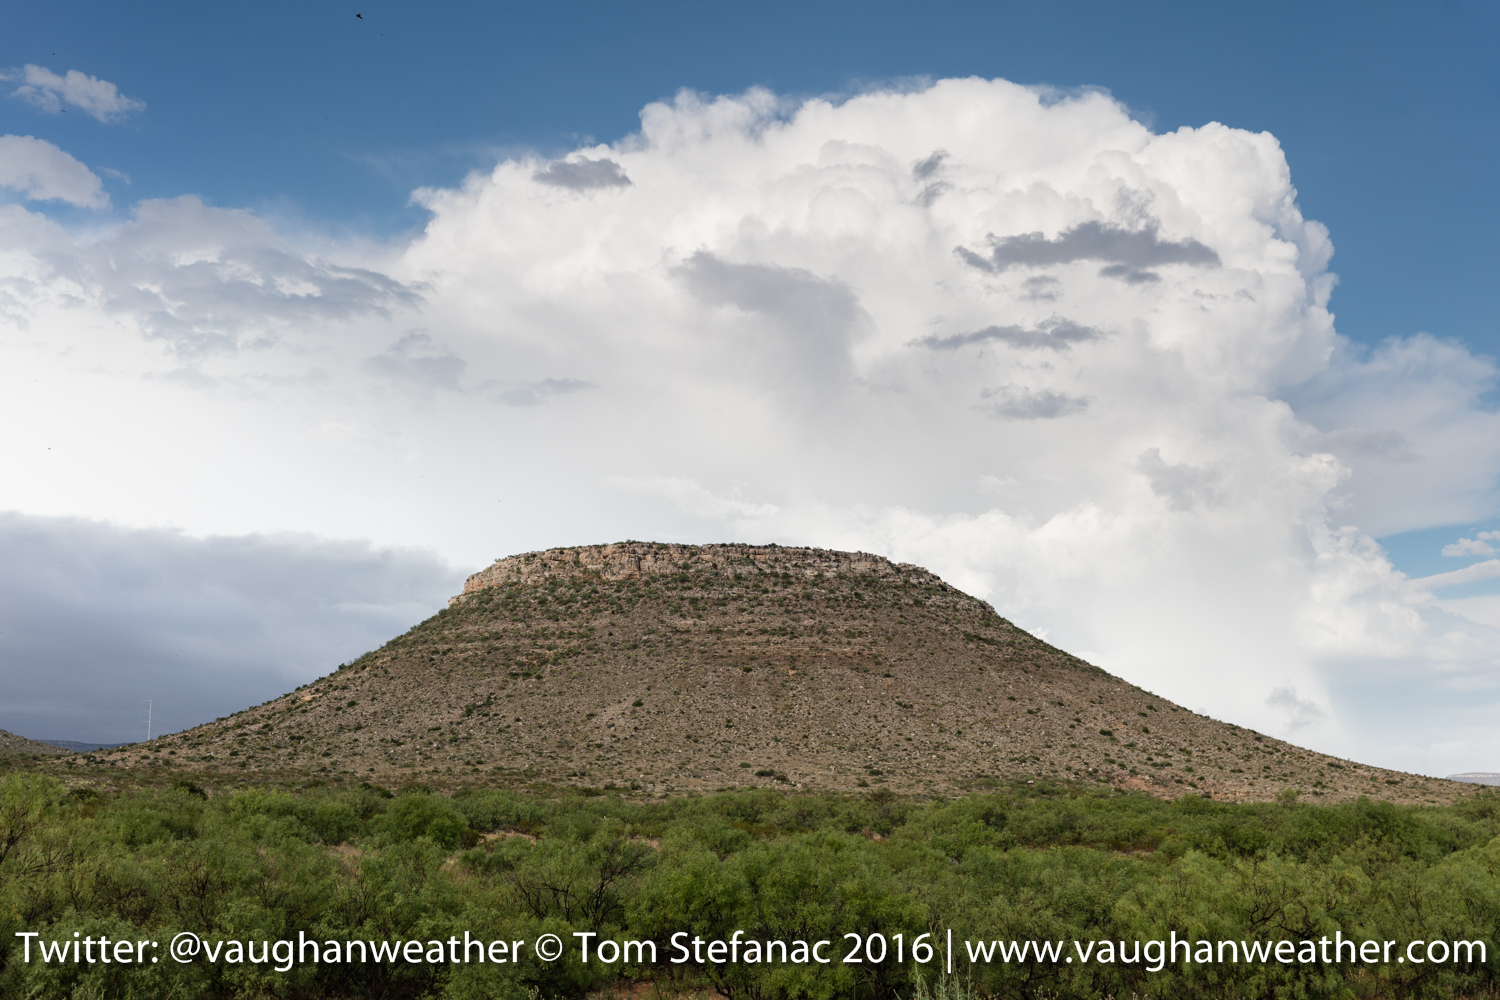 Supercell behind a flattop rock in Perico, Texas